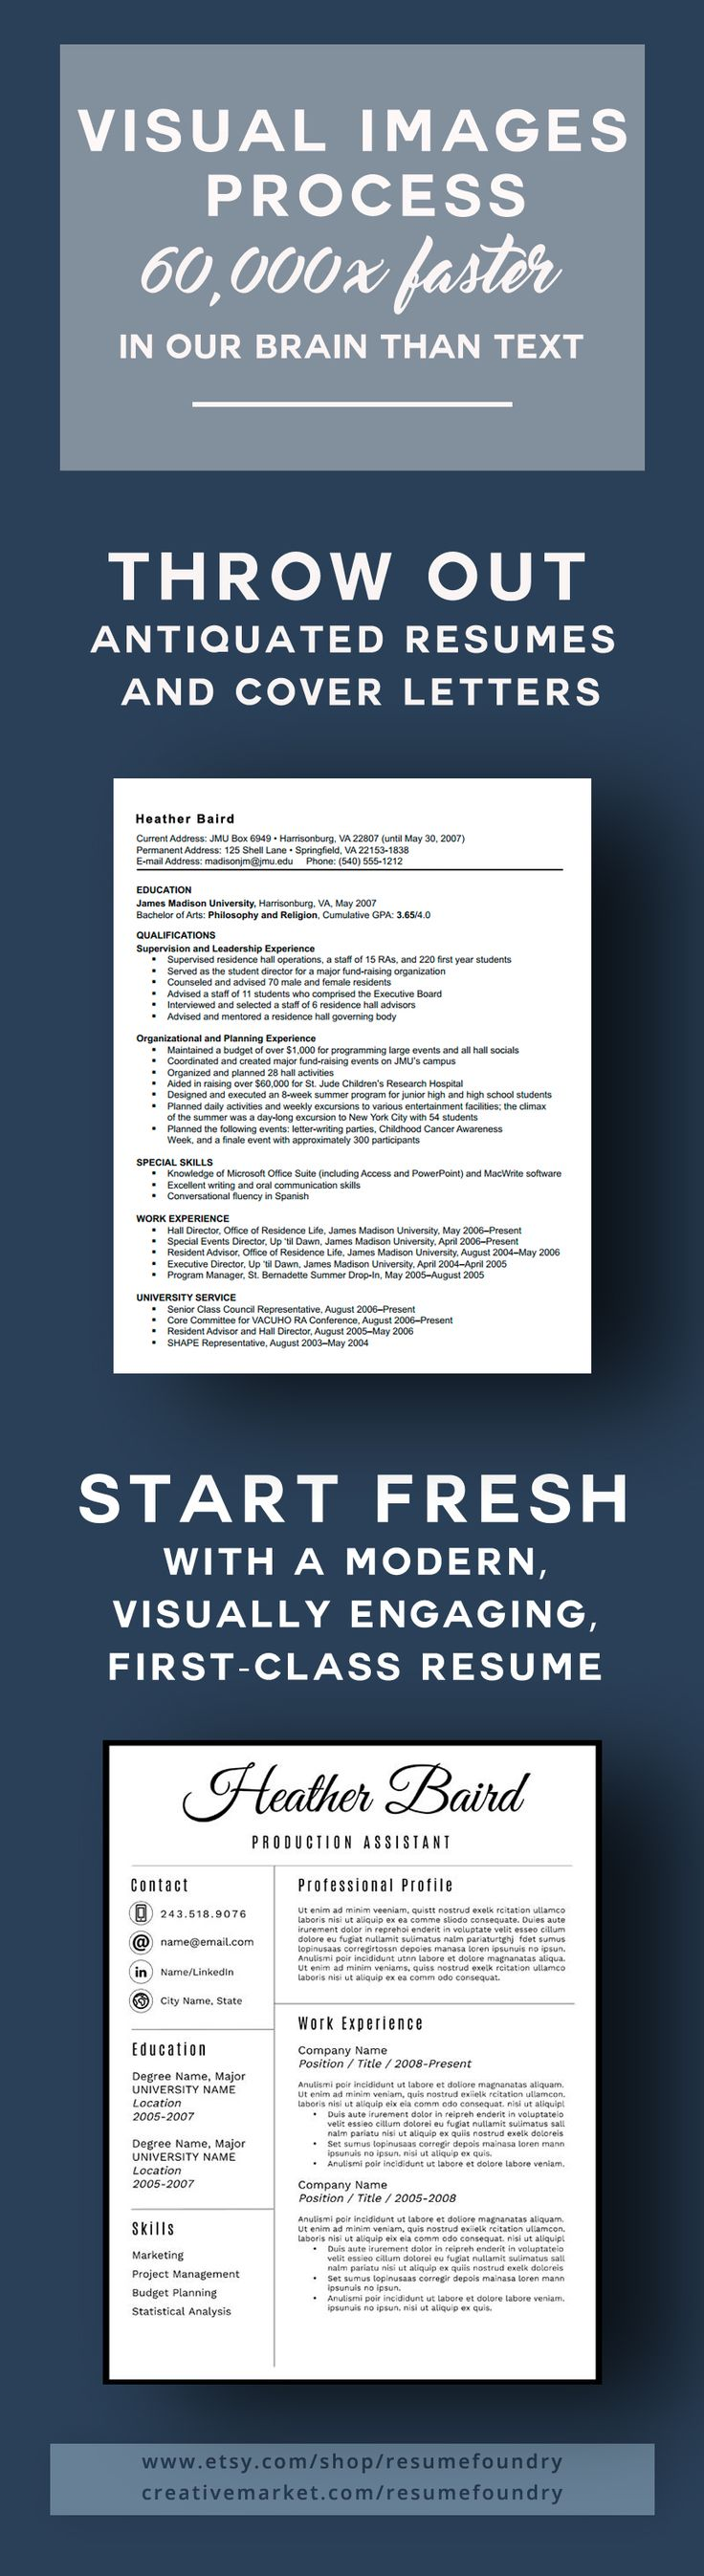 key words for resume%0A Visually engaging modern resume